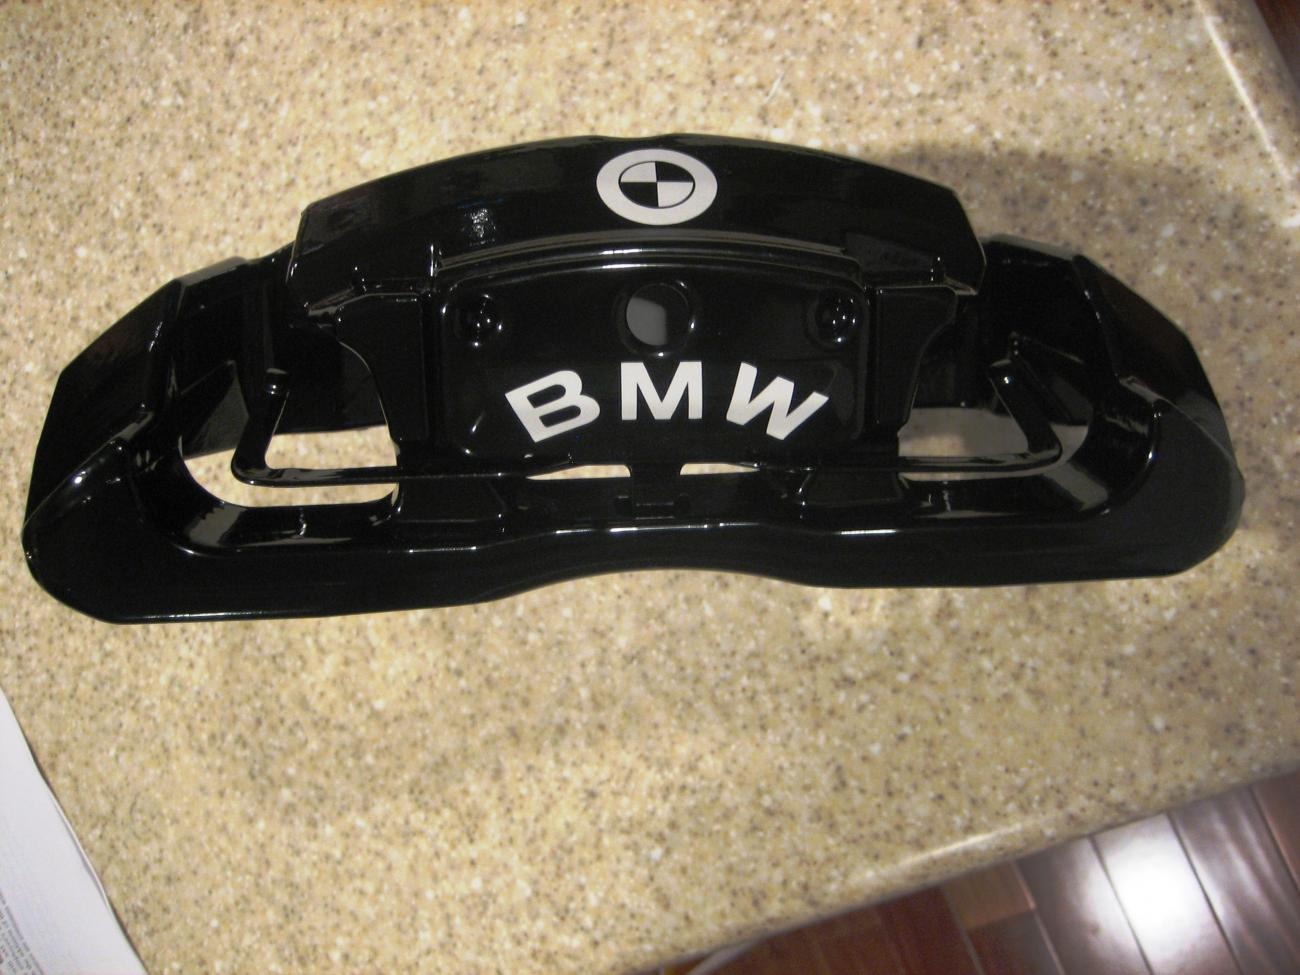 Powdercoated OEM Calipers To Decal Or Not To Decal - Bmw brake caliper decals